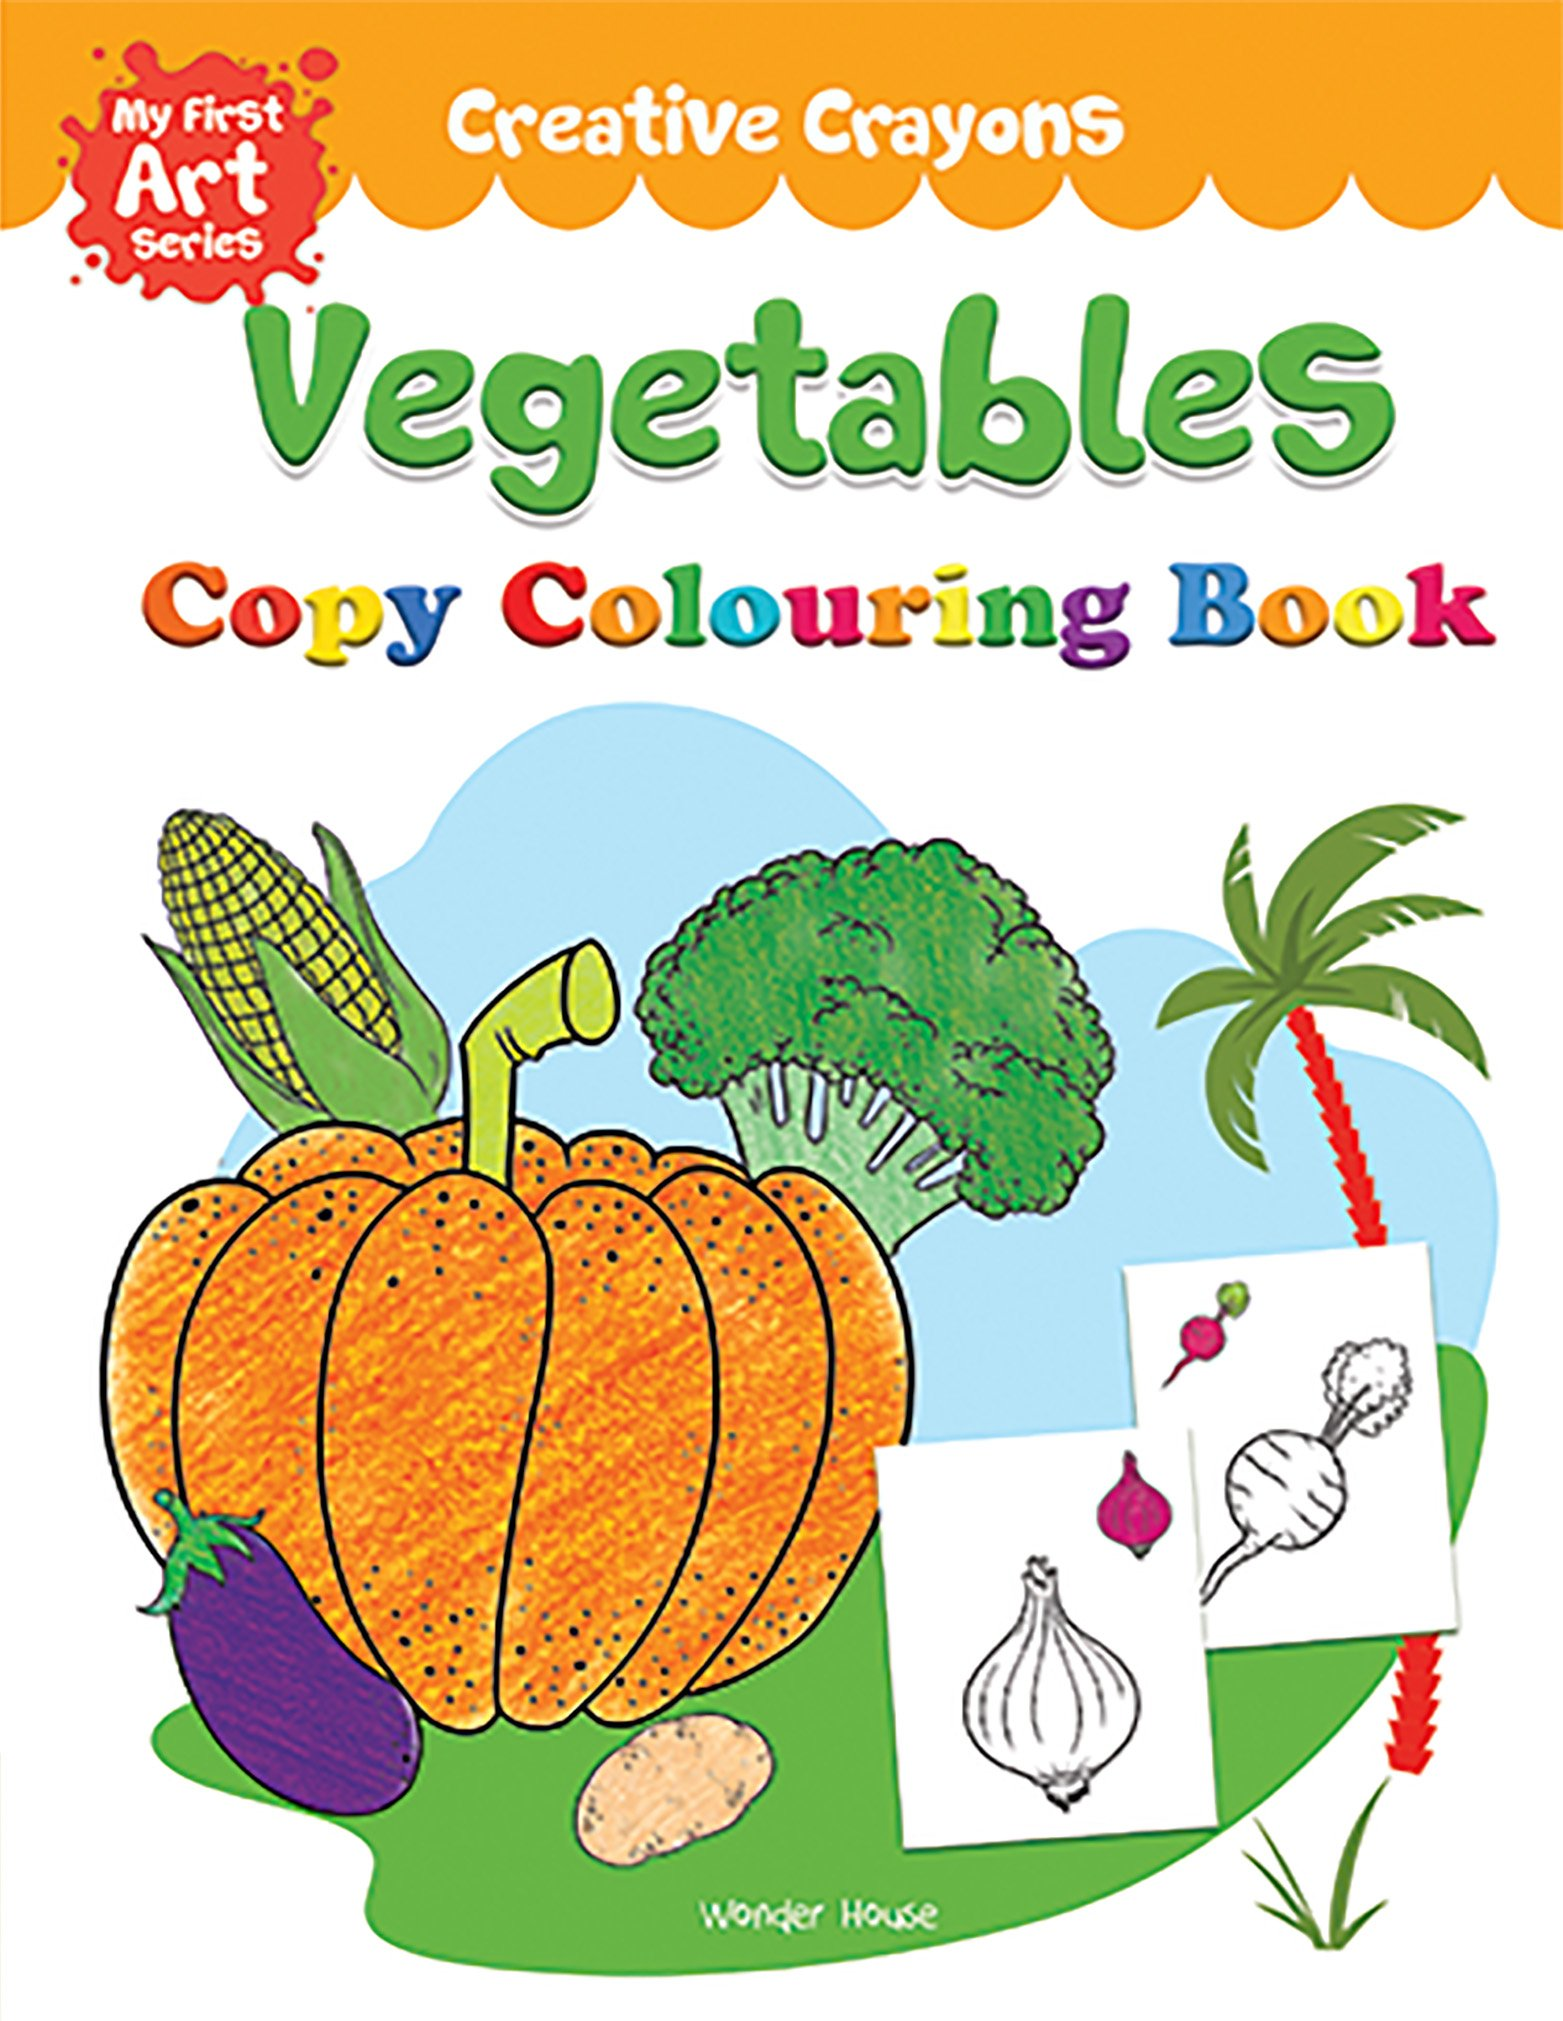 Creative Crayons - Vegetables : My First Art Series - Crayon Copy Colouring Books